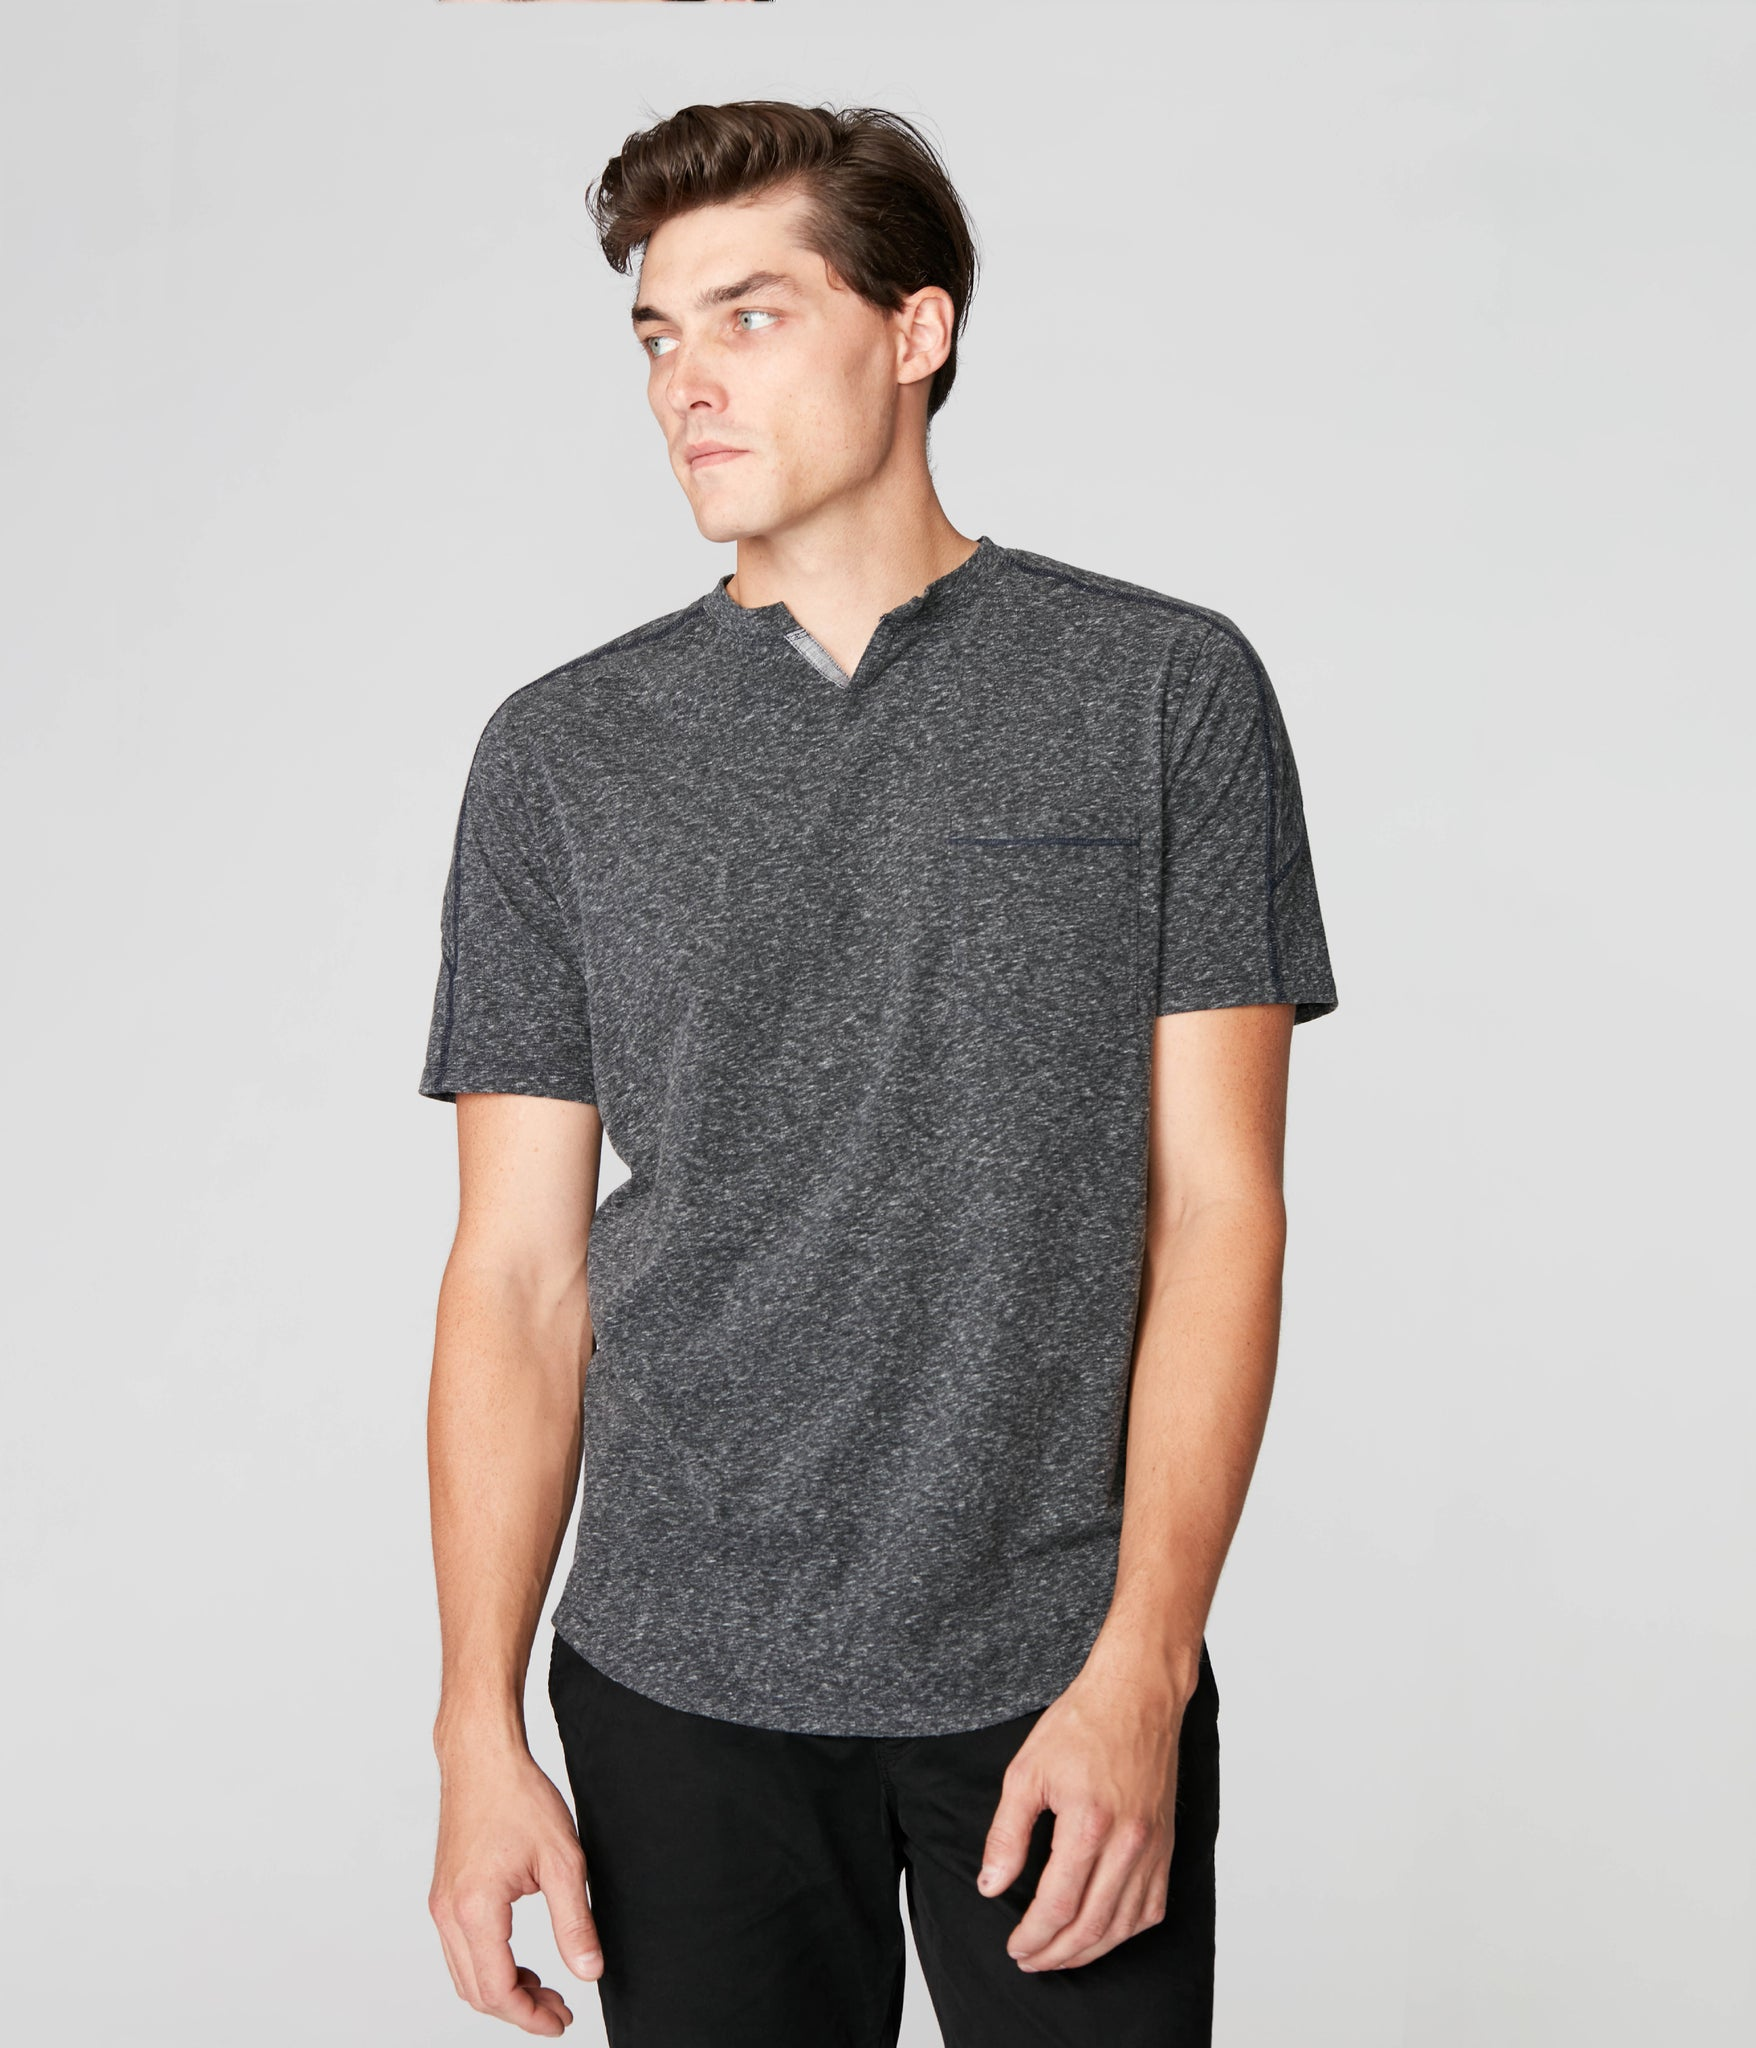 Victory V-Notch Tee - Charcoal Heather